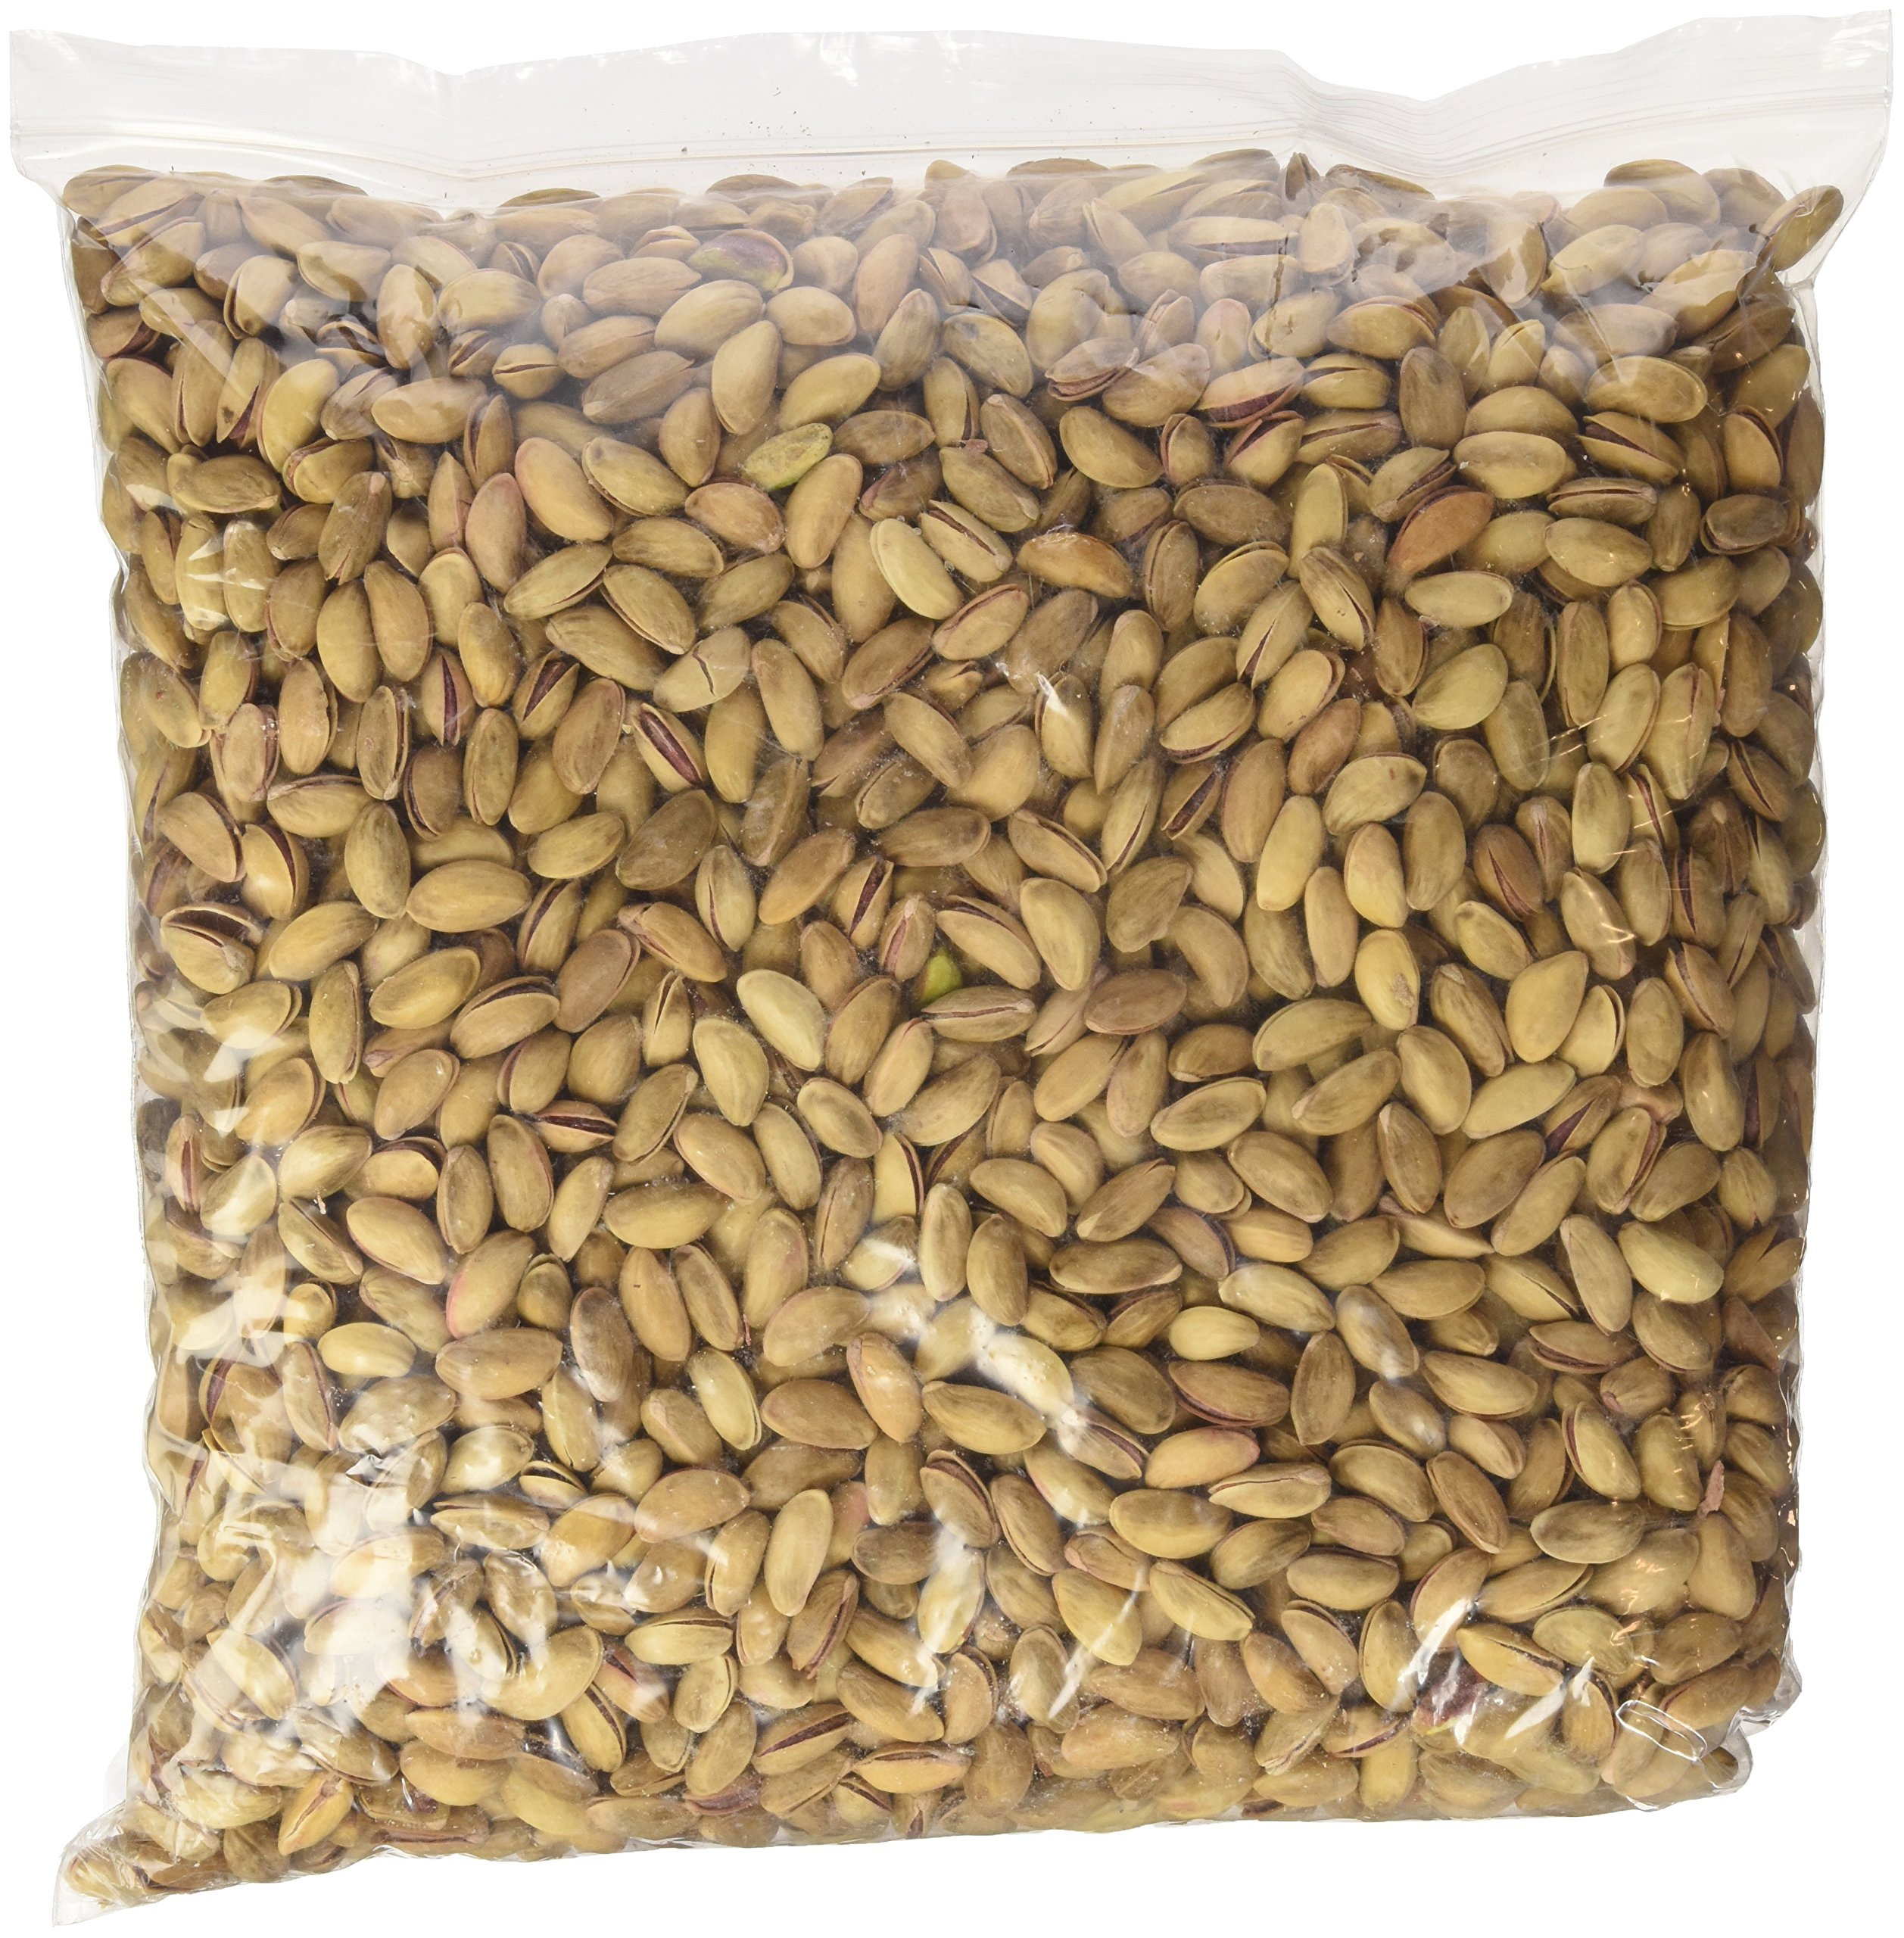 Turkish Antep Pistachios (5 Pound Bag)